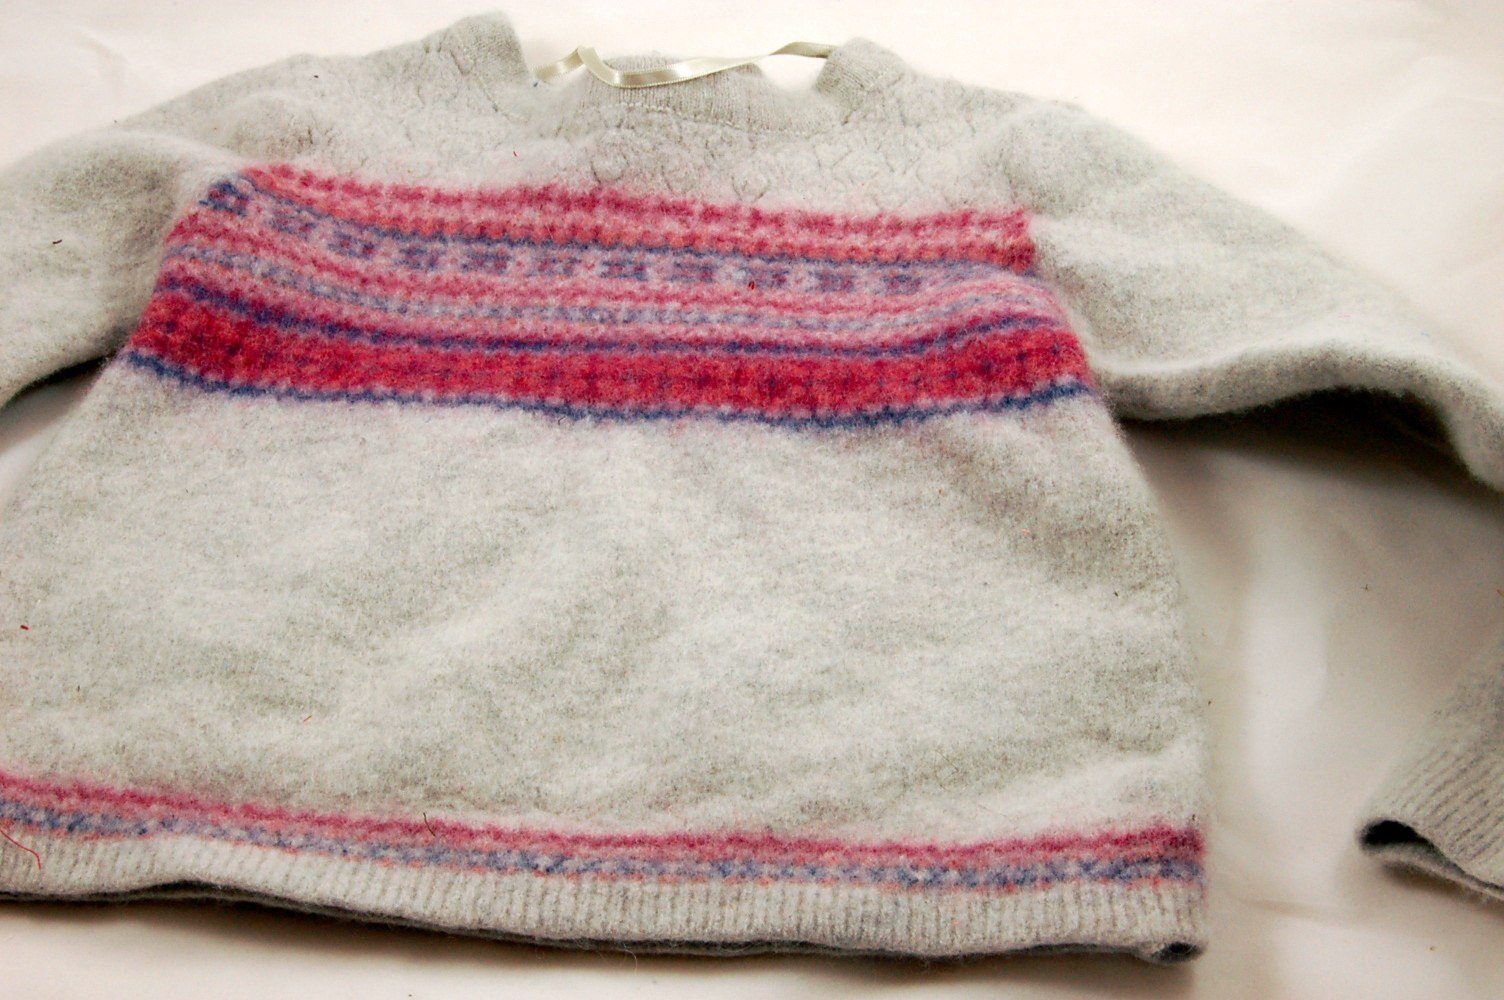 Felt Jumper Hot Water Bottle Cover · vicky myers creations